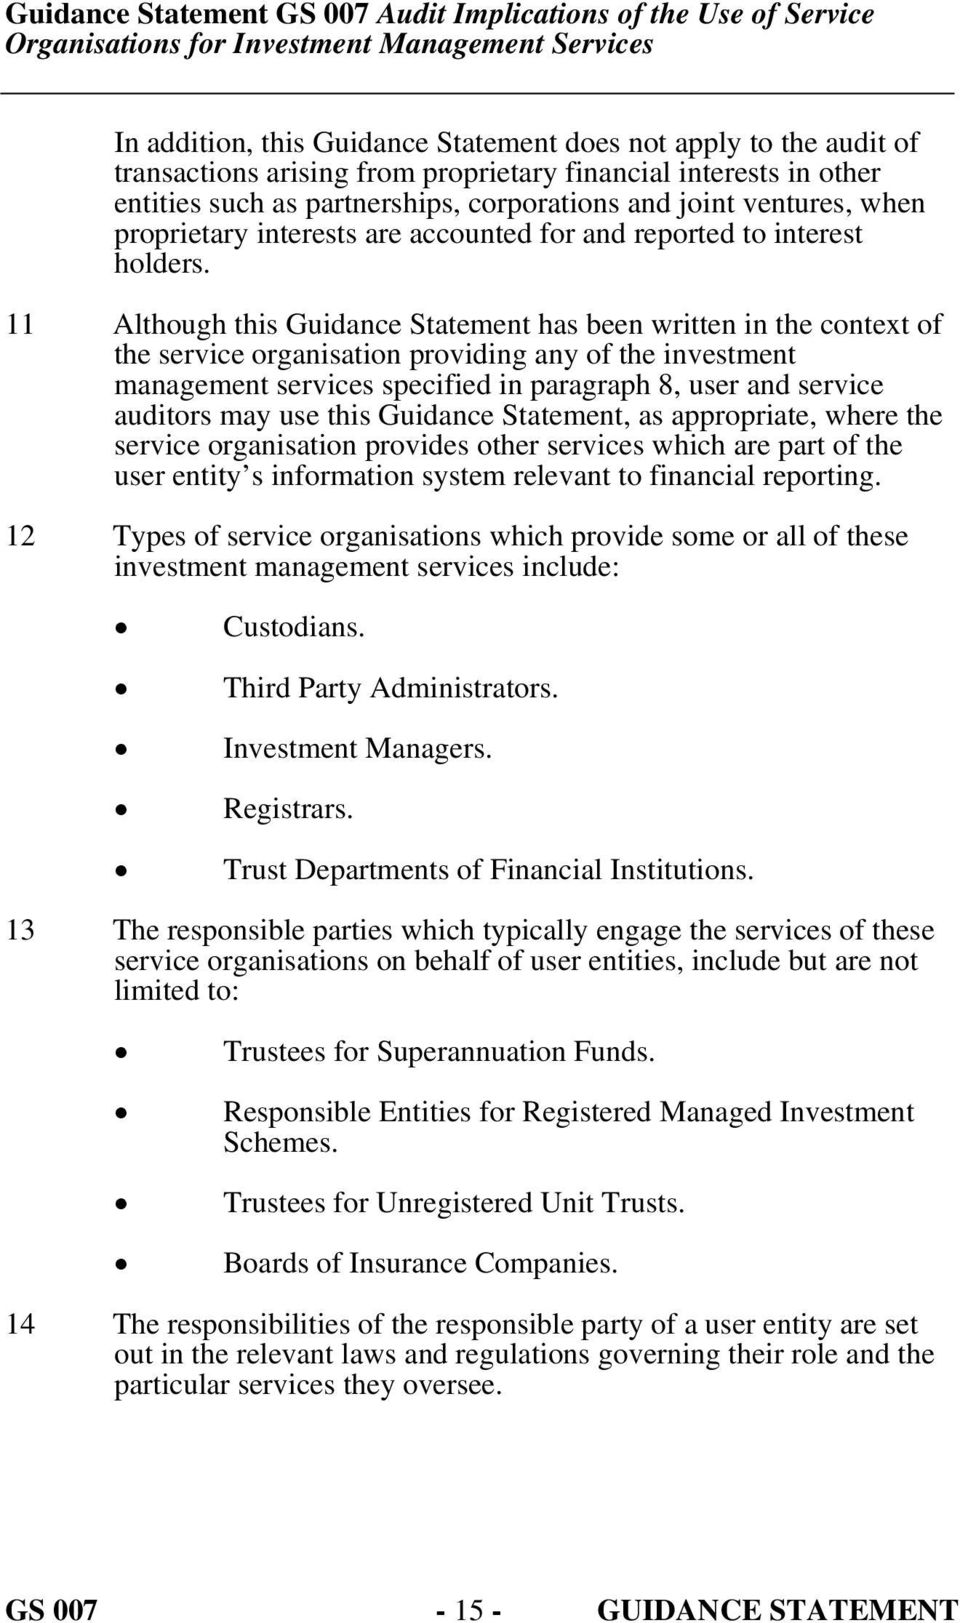 11 Although this Guidance Statement has been written in the context of the service organisation providing any of the investment management services specified in paragraph 8, user and service auditors